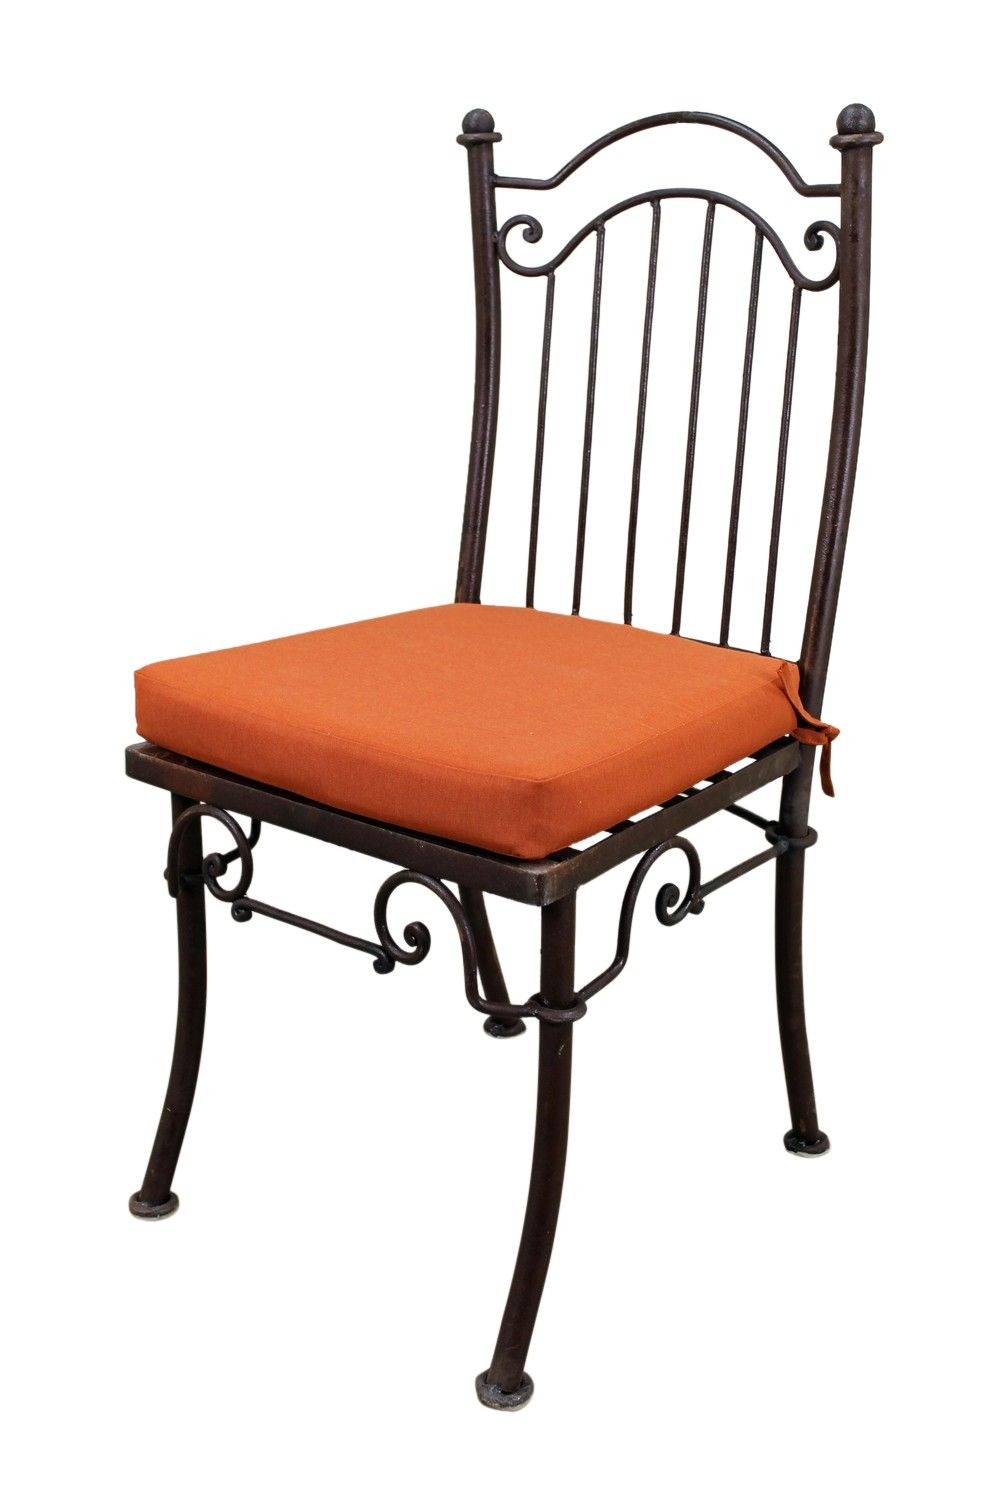 iron dining chair with cushion dining chair cushions with ties pinterest cushions chairs. Black Bedroom Furniture Sets. Home Design Ideas